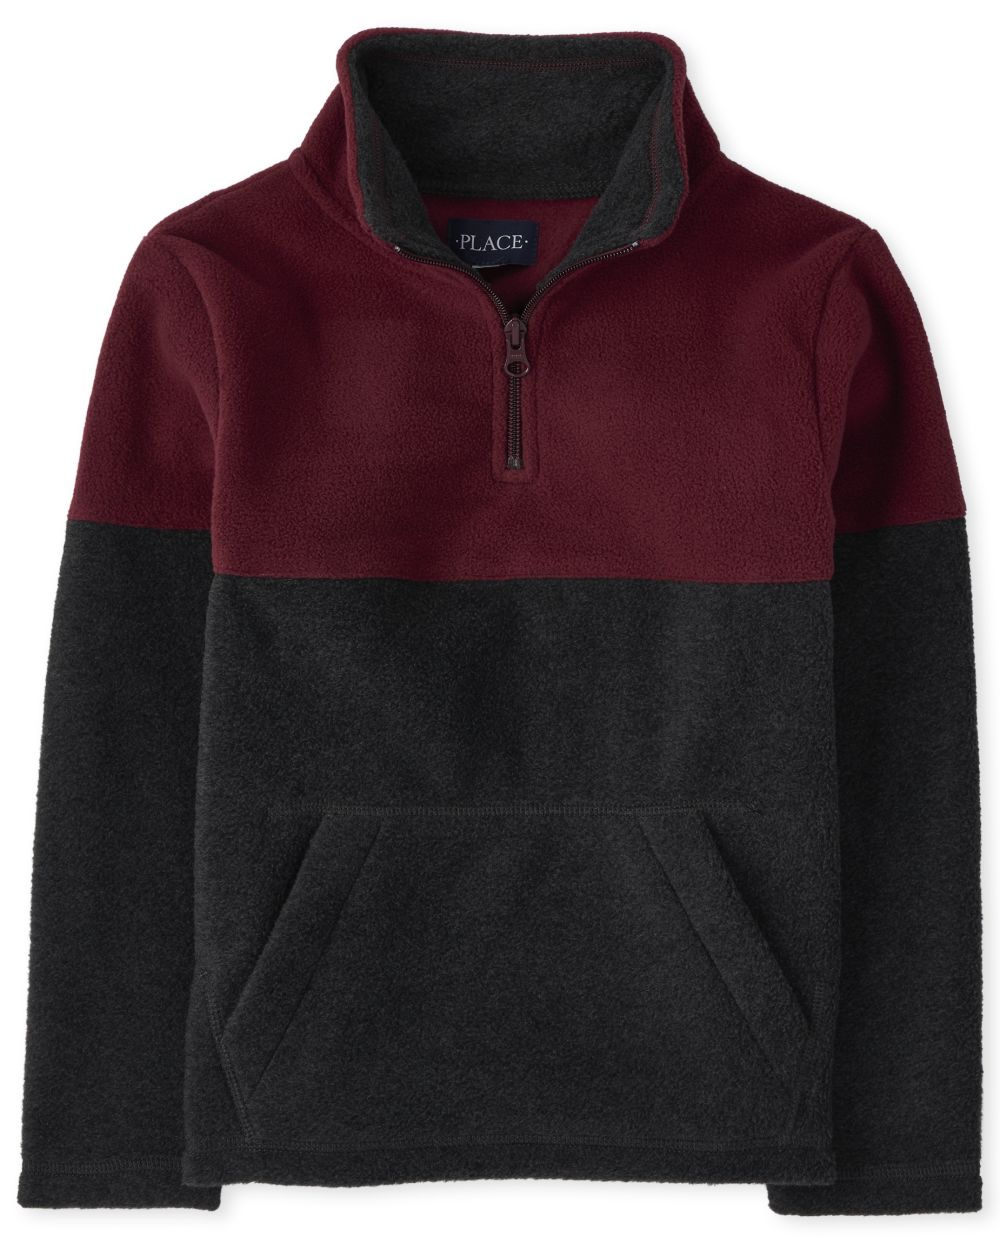 Boys Colorblock Glacier Fleece Half Zip Pullover